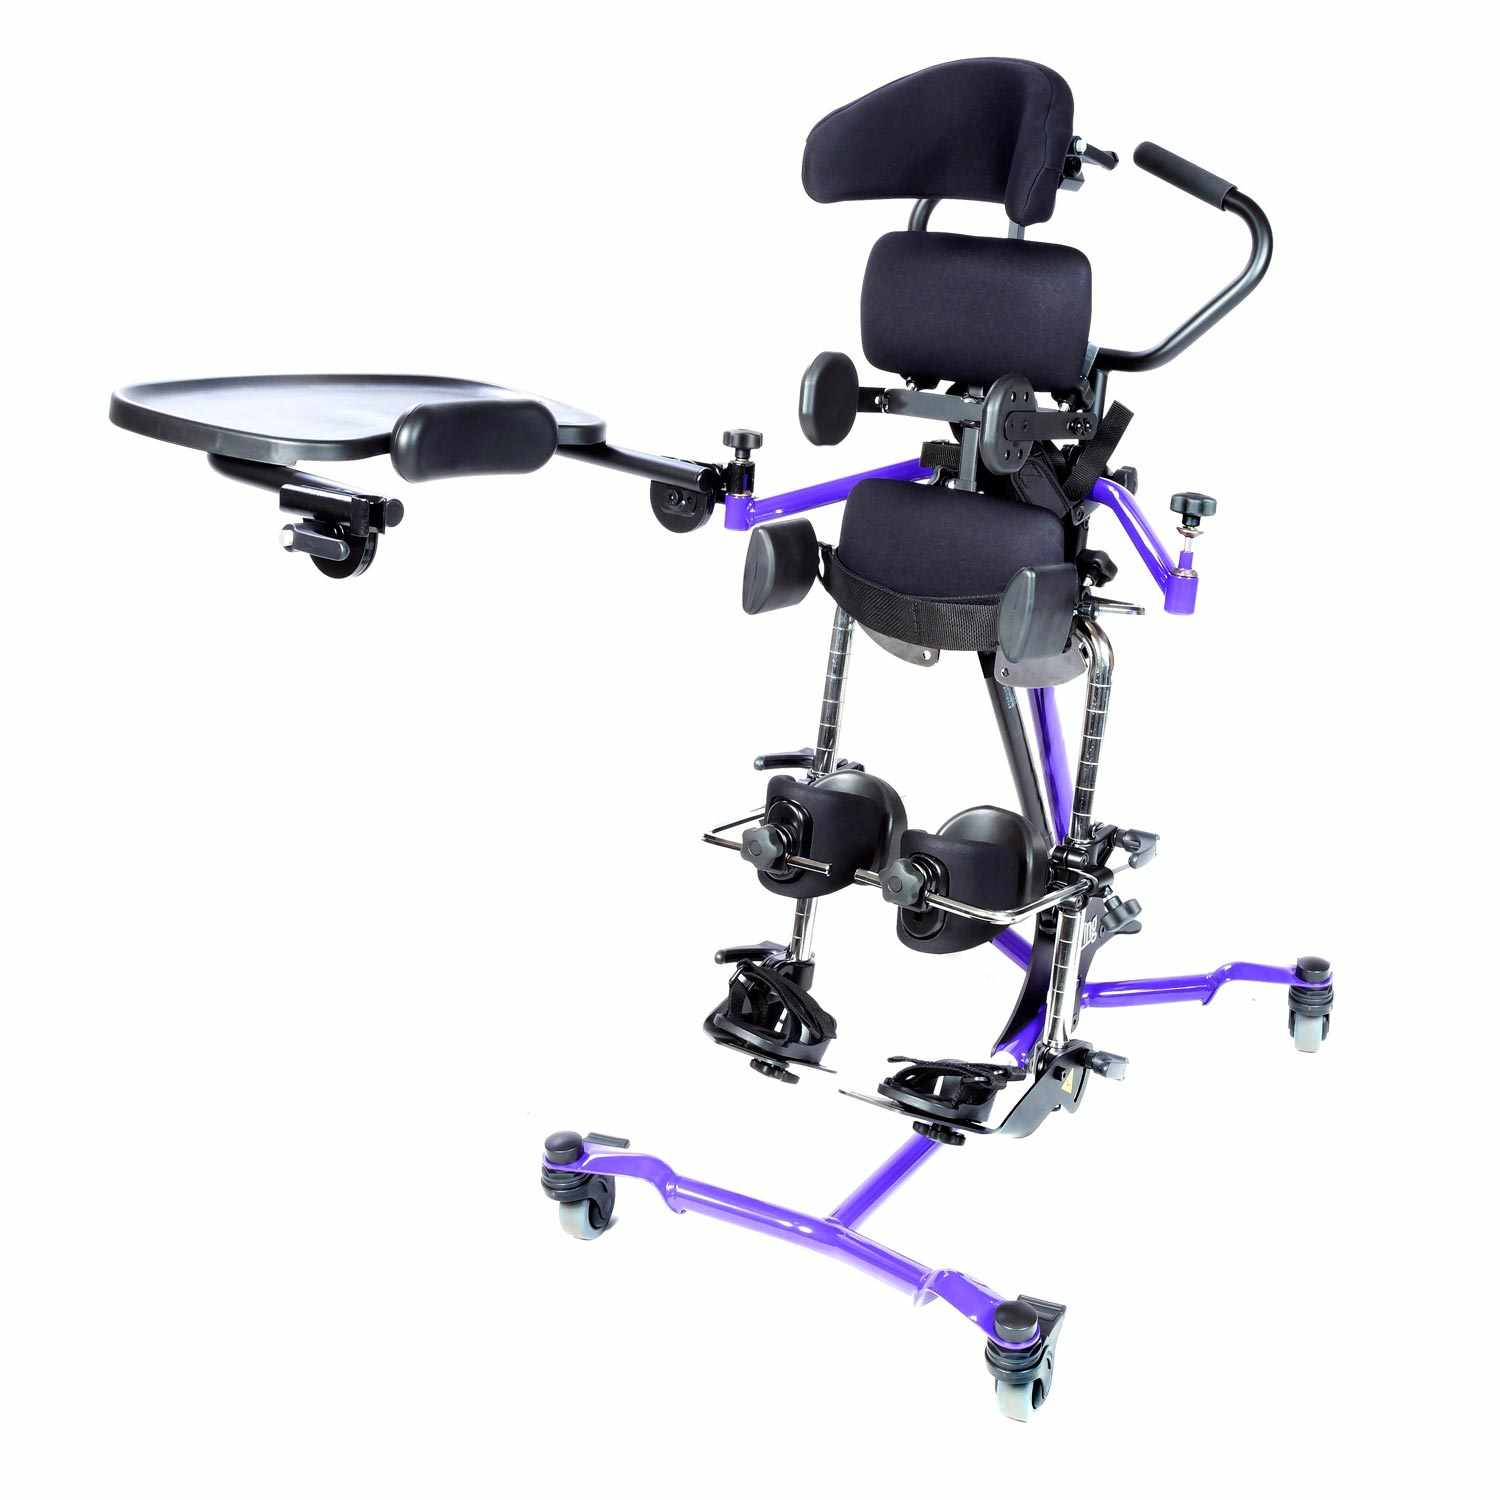 Easystand Zing Size 1 Supine Stander | Easystand (Pa5522)